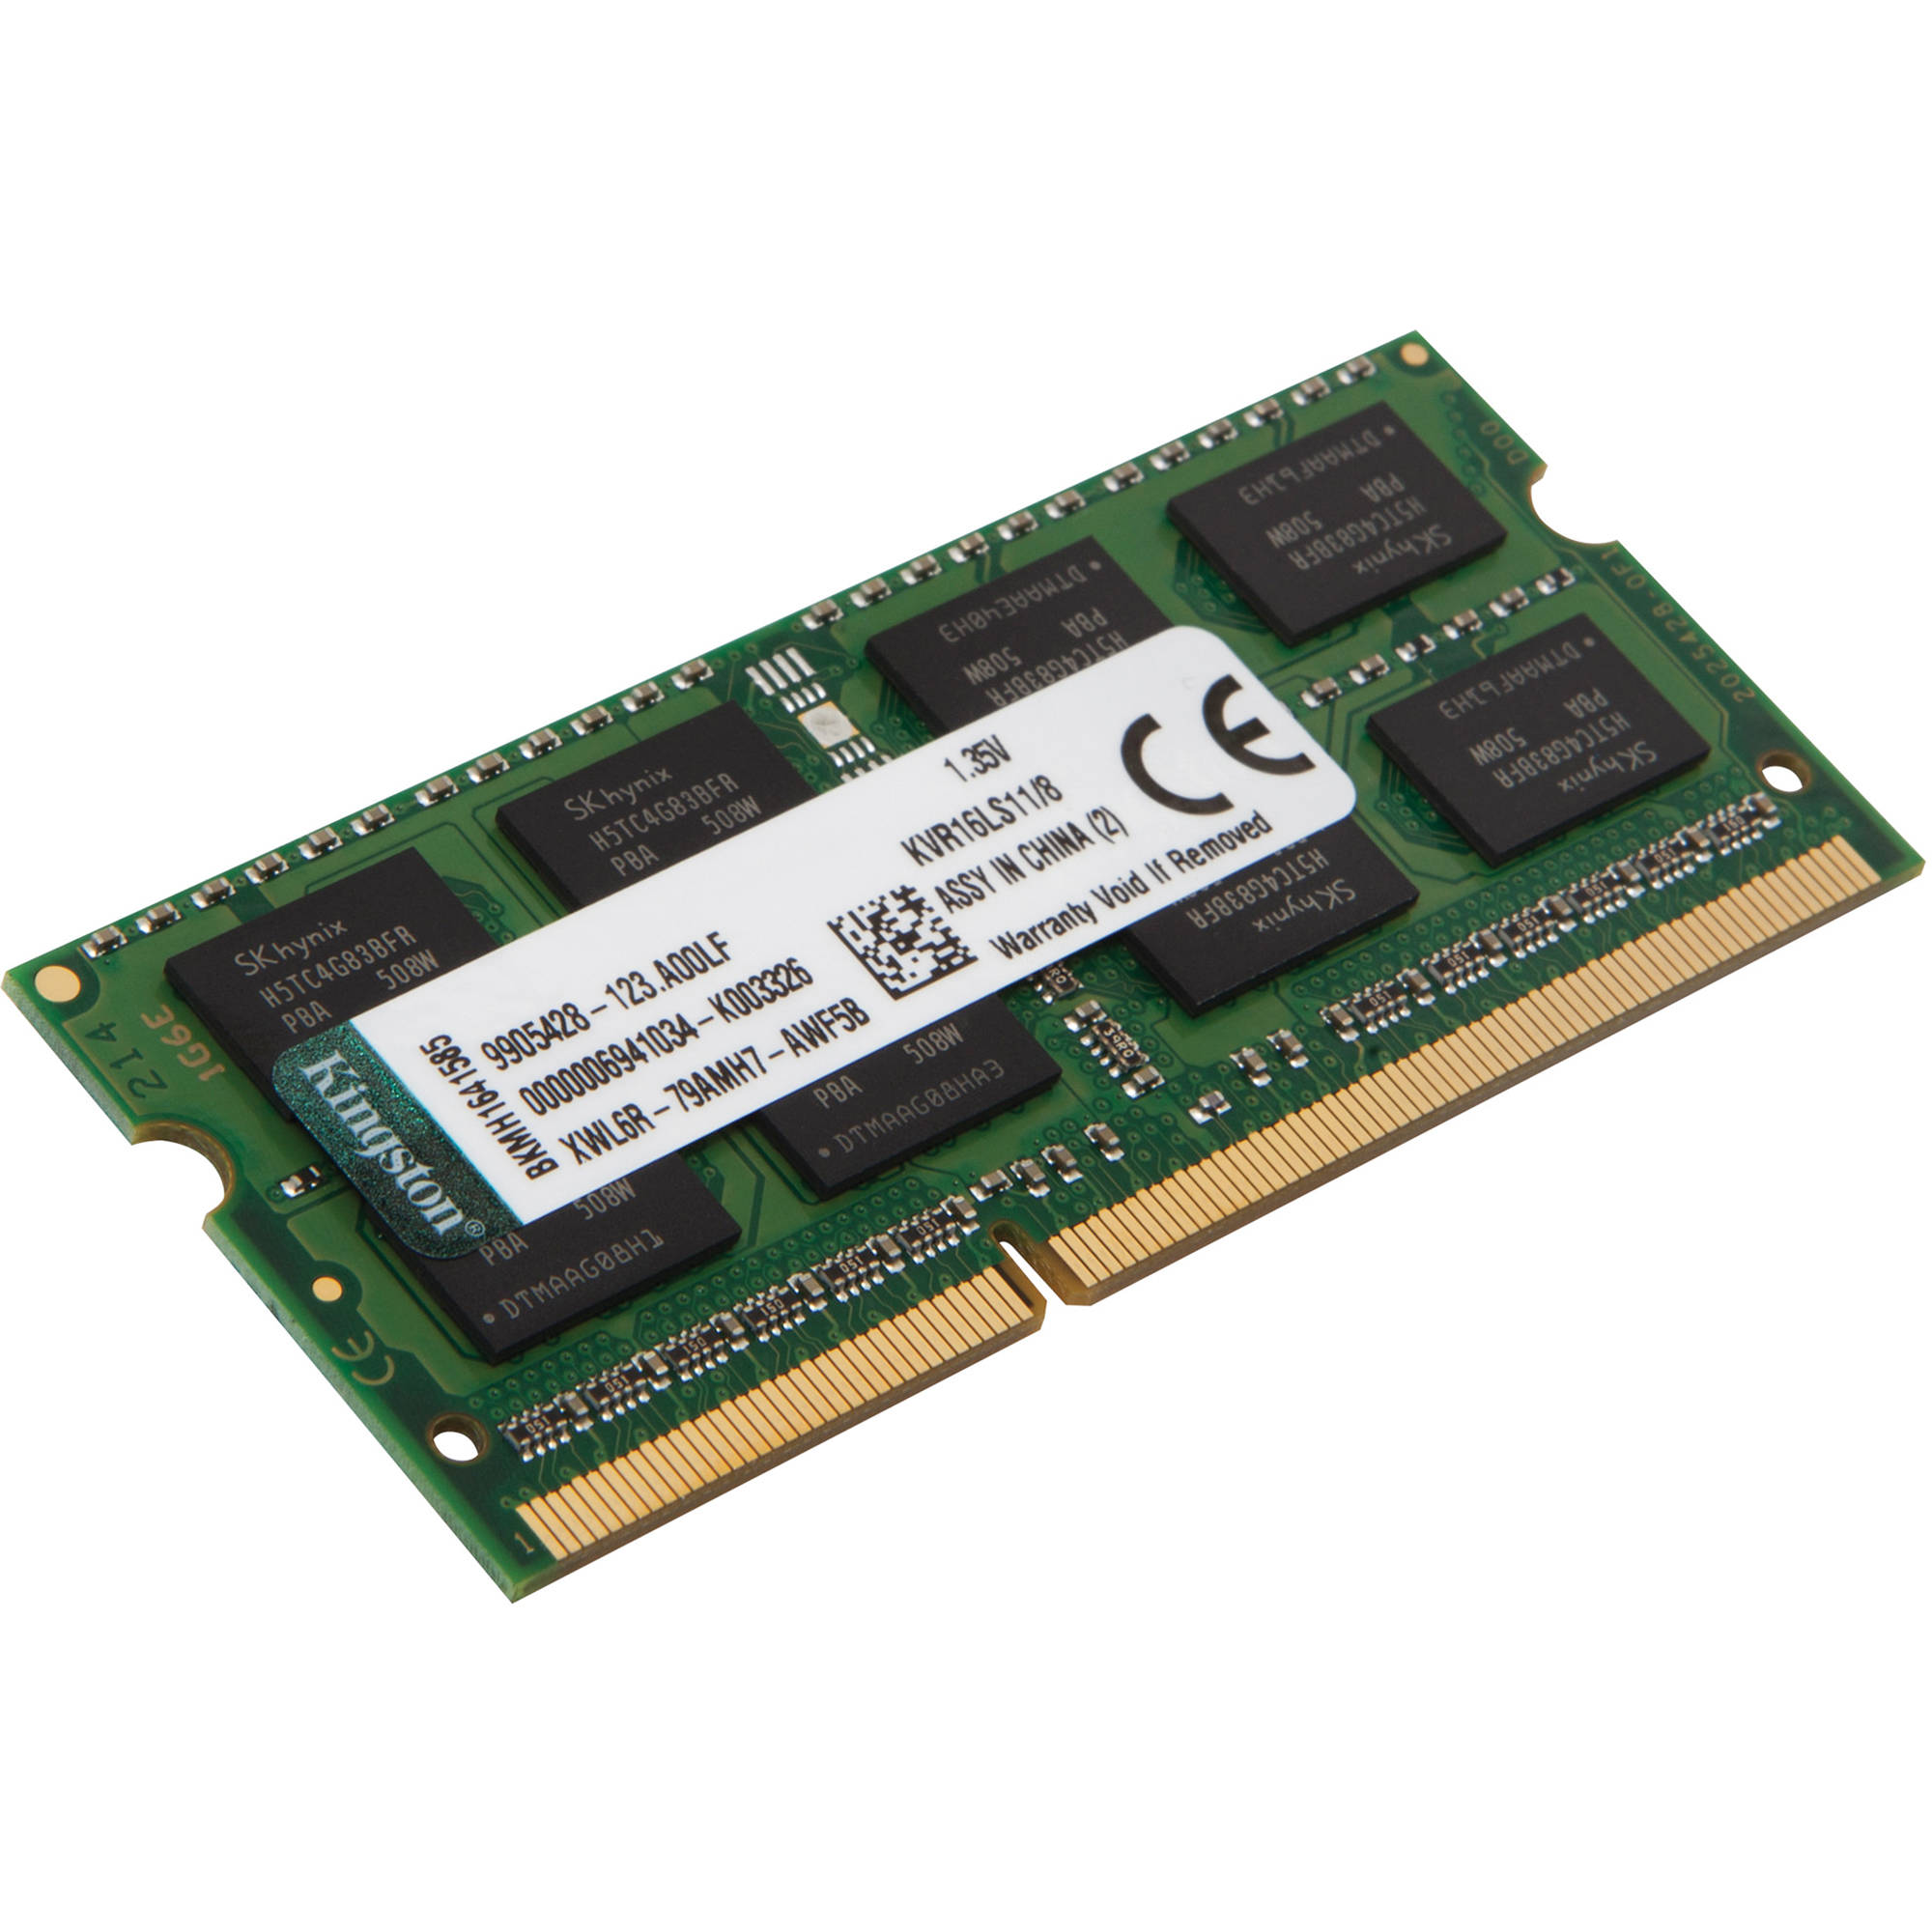 Kingston 8GB DDR3L 1600 MHz SODIMM Memory Module KVR16LS11